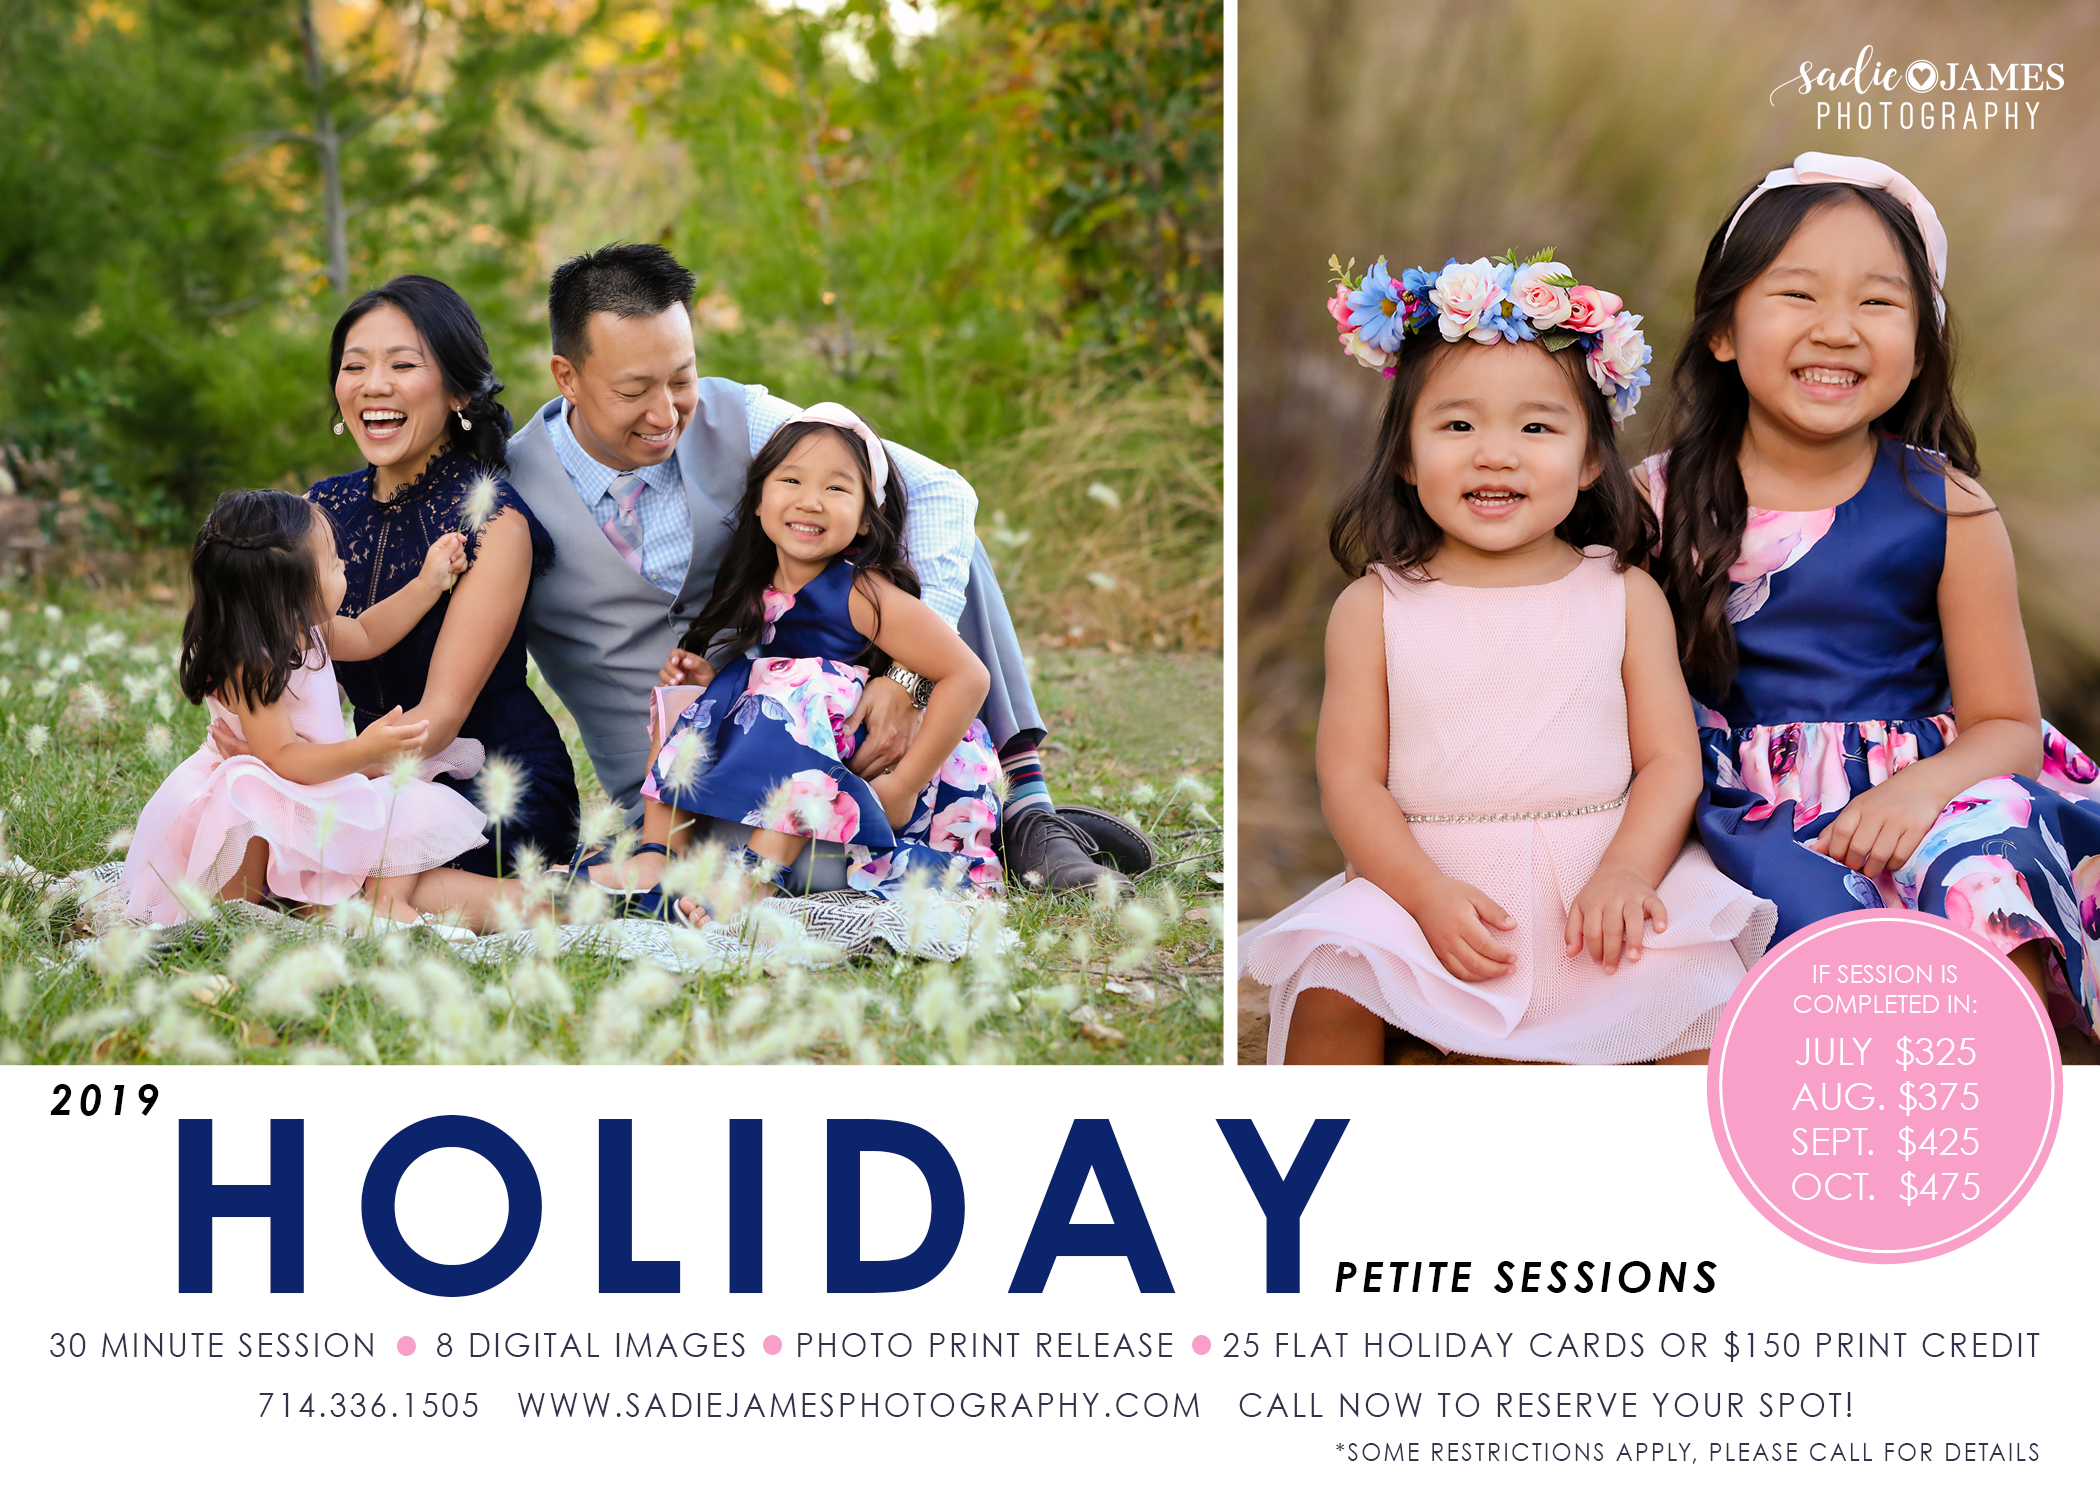 Petite Holiday Session options with Sadie James Photography